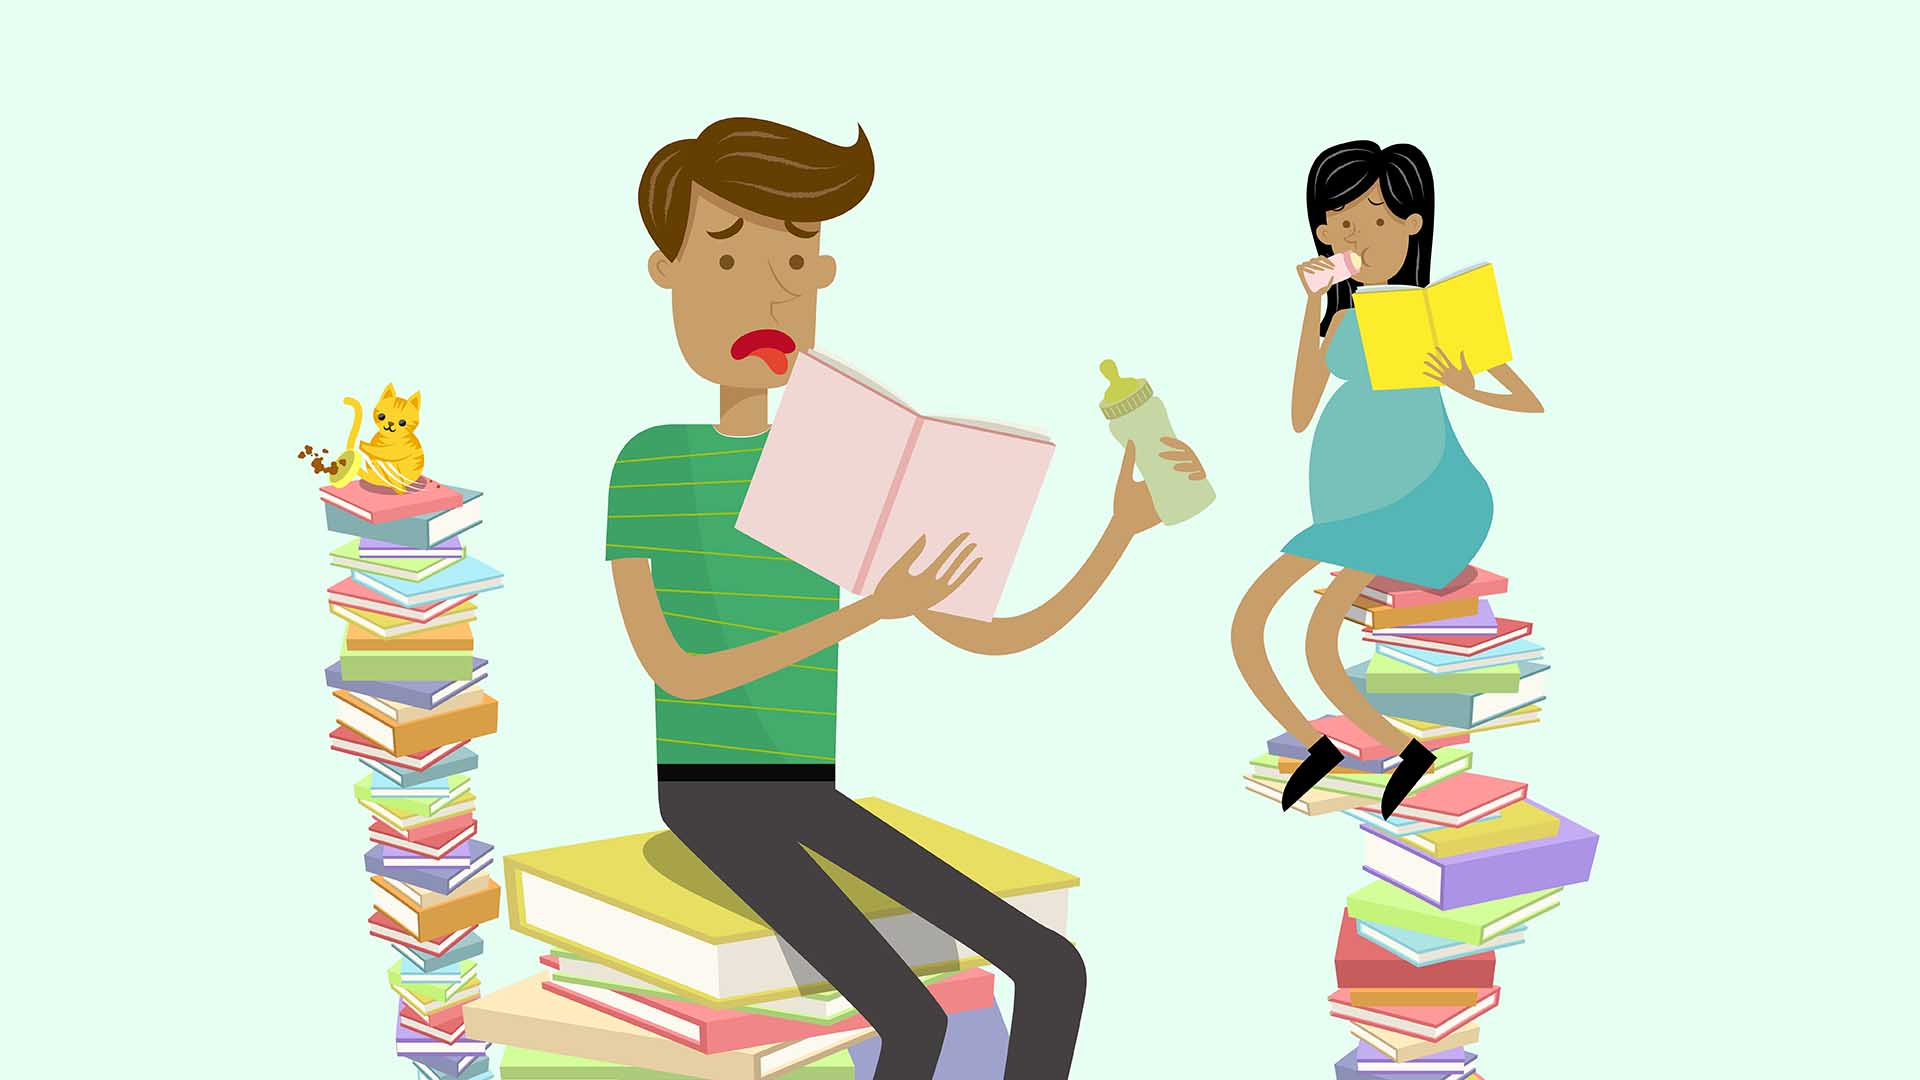 2D animated parents to be atop a pile of books.